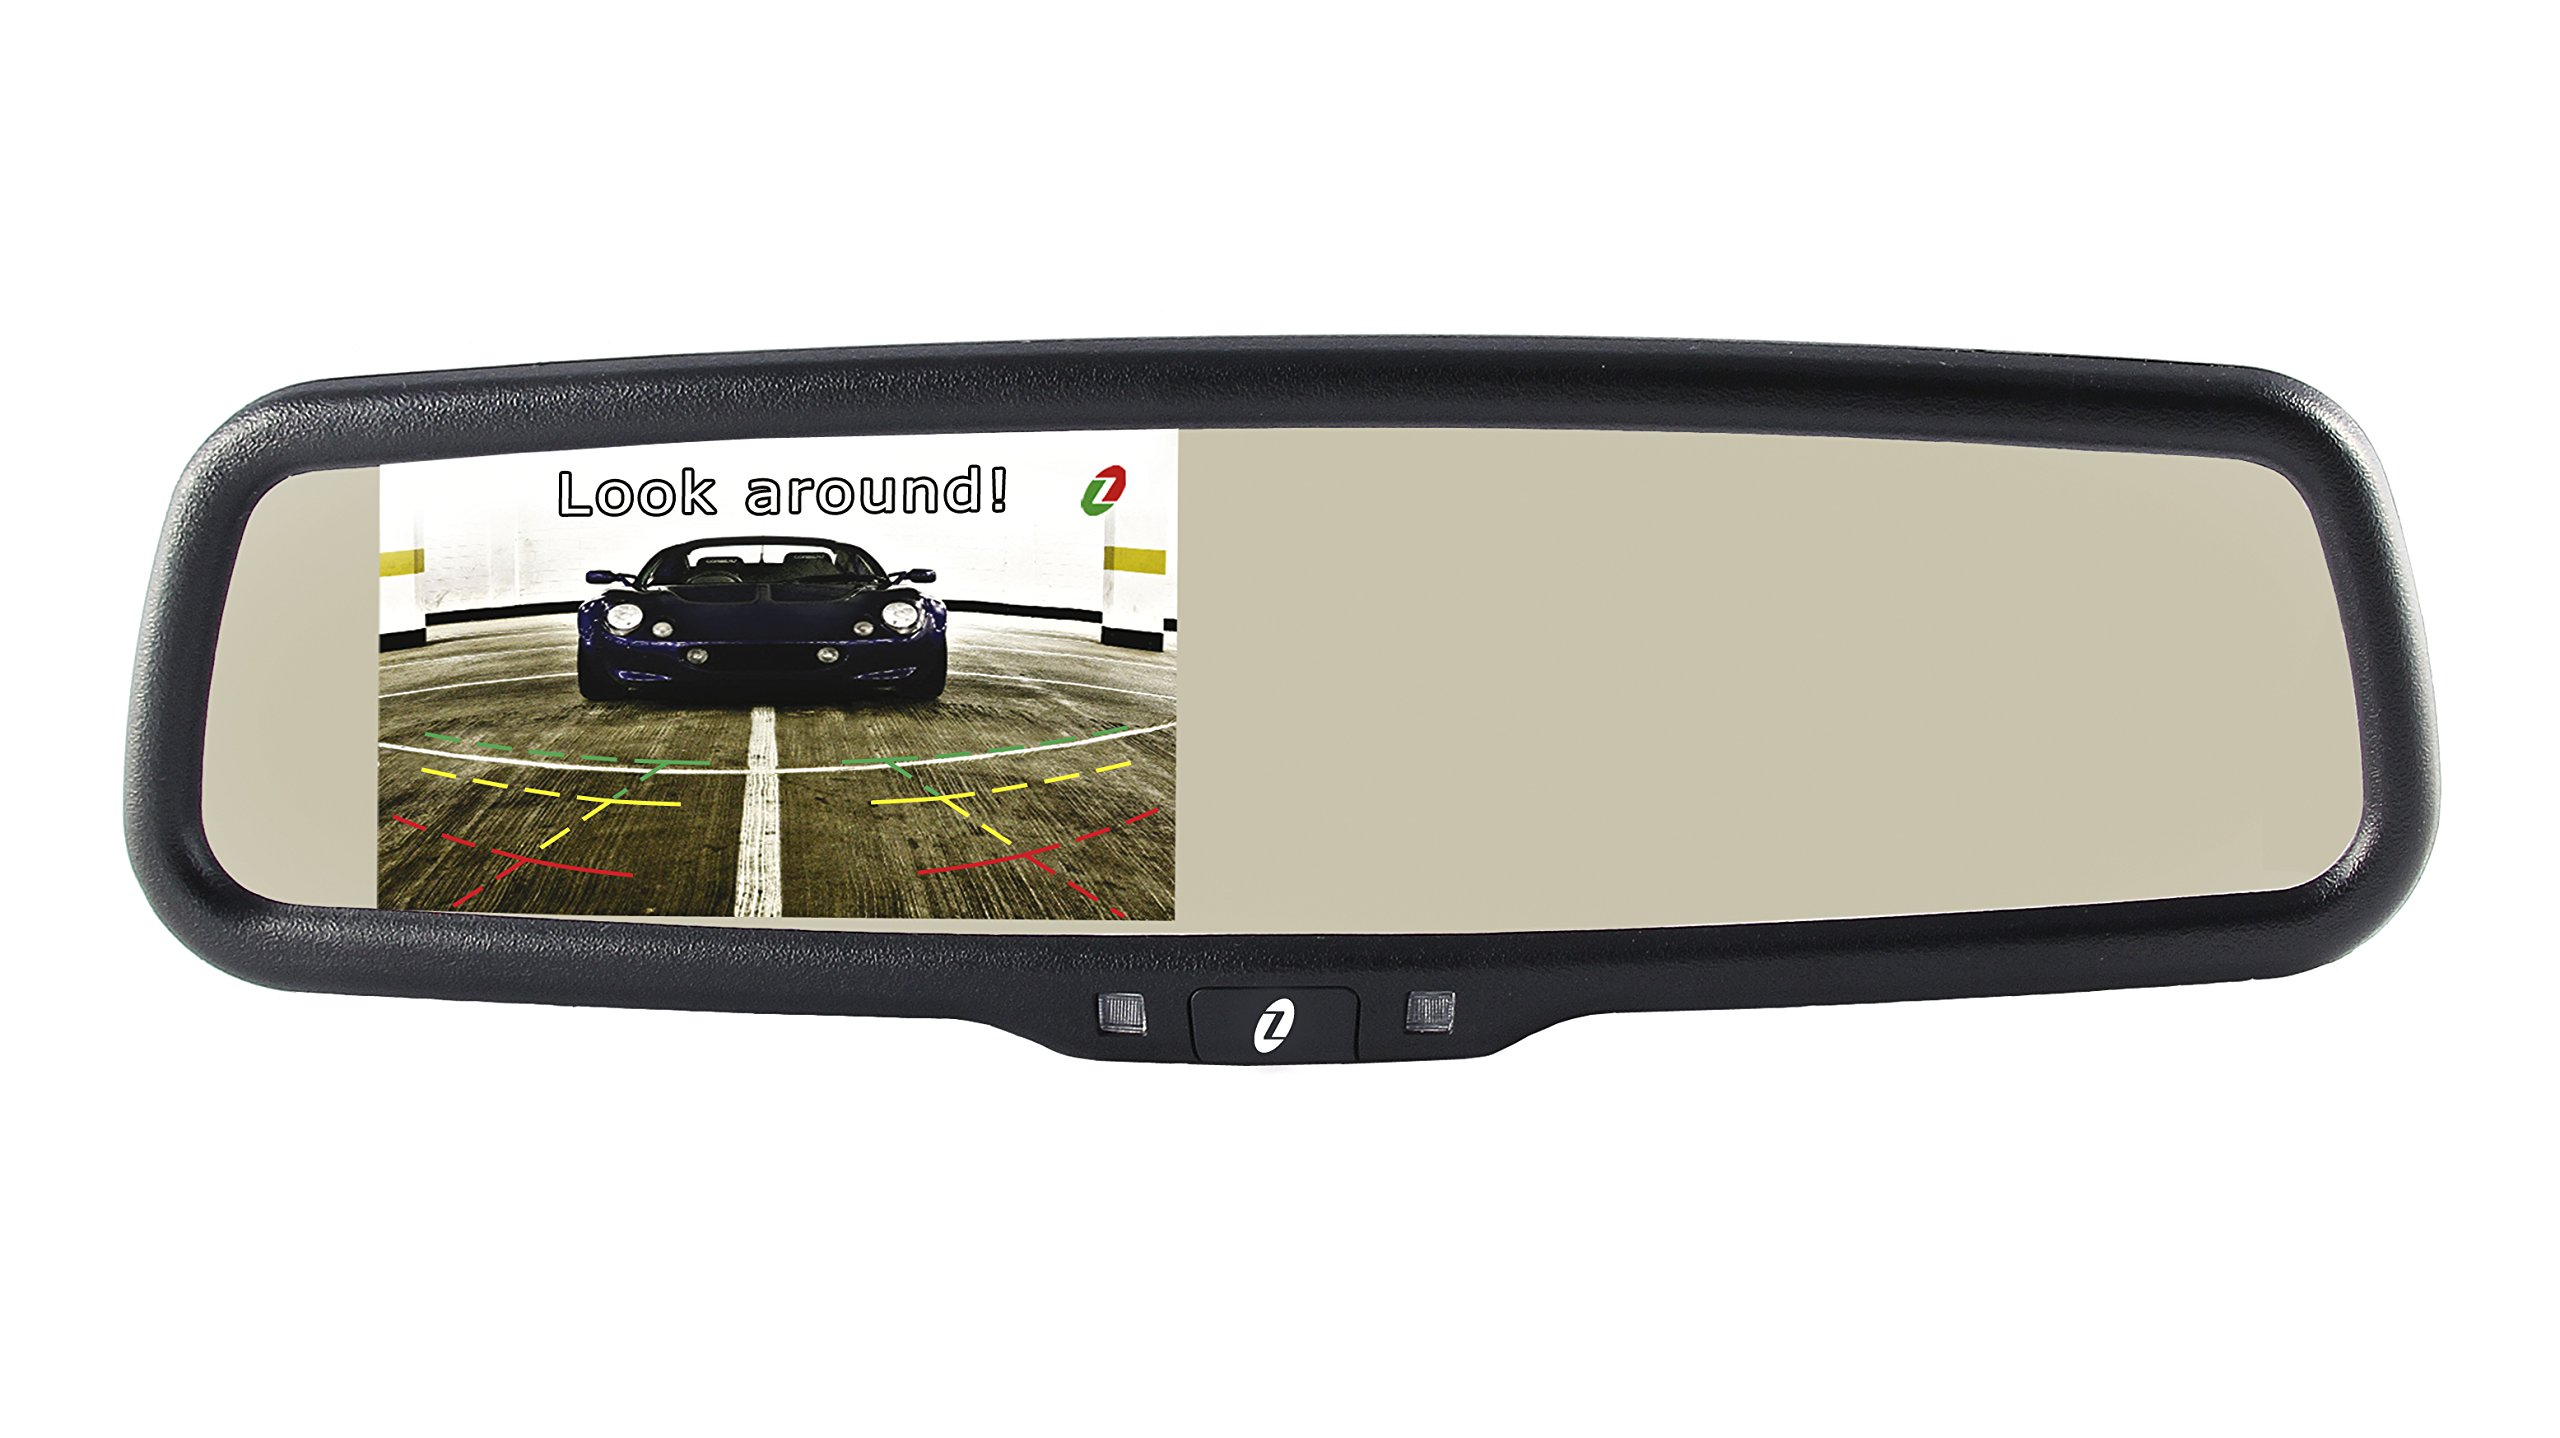 Gazer MM507 4.3'' LCD BMW Peugeot Ford Volvo Citroen Original Car Rearview Mirror / 1000 cd/m2 High Brightness / Integrated OEM Mount / 2 Video Inputs / Brightness Adjustment, Display Turning On-Off